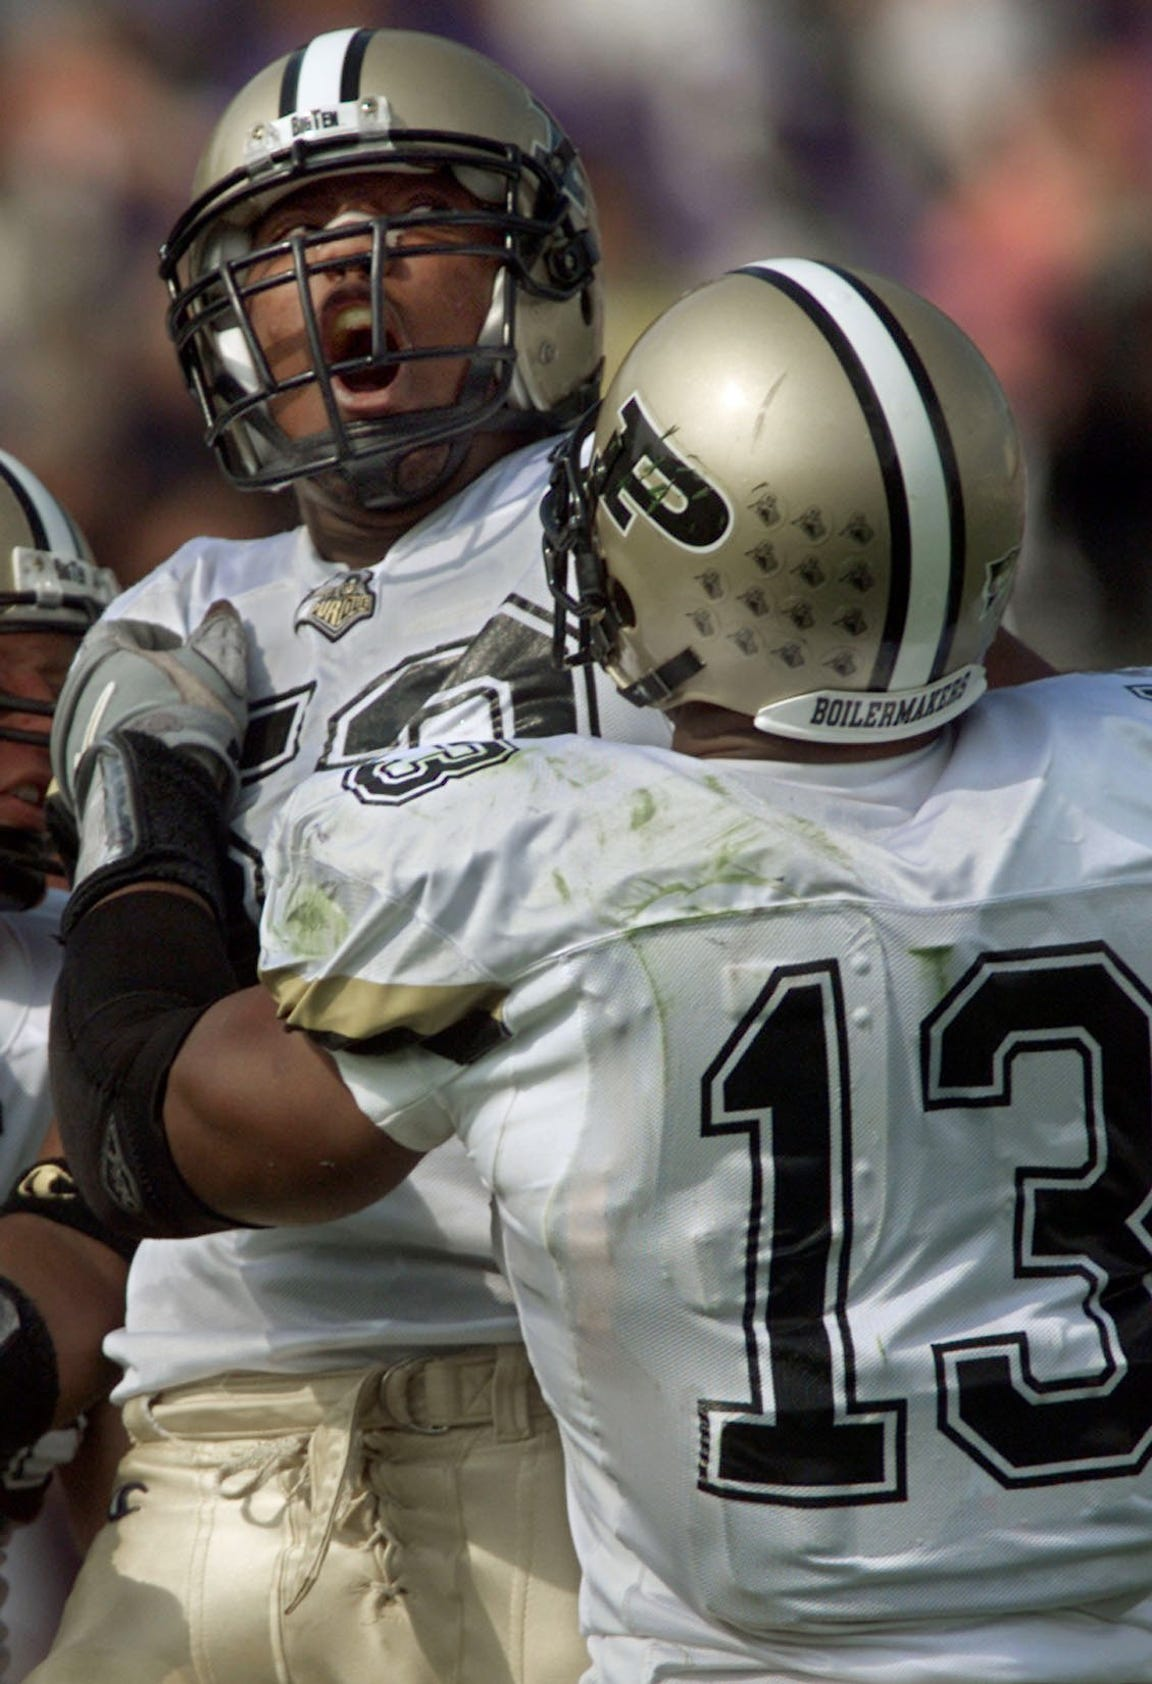 Shaun Phillips, left, is grabbed by teammate Akin Ayodele while celebrating a tackle against Northwestern in 2000.